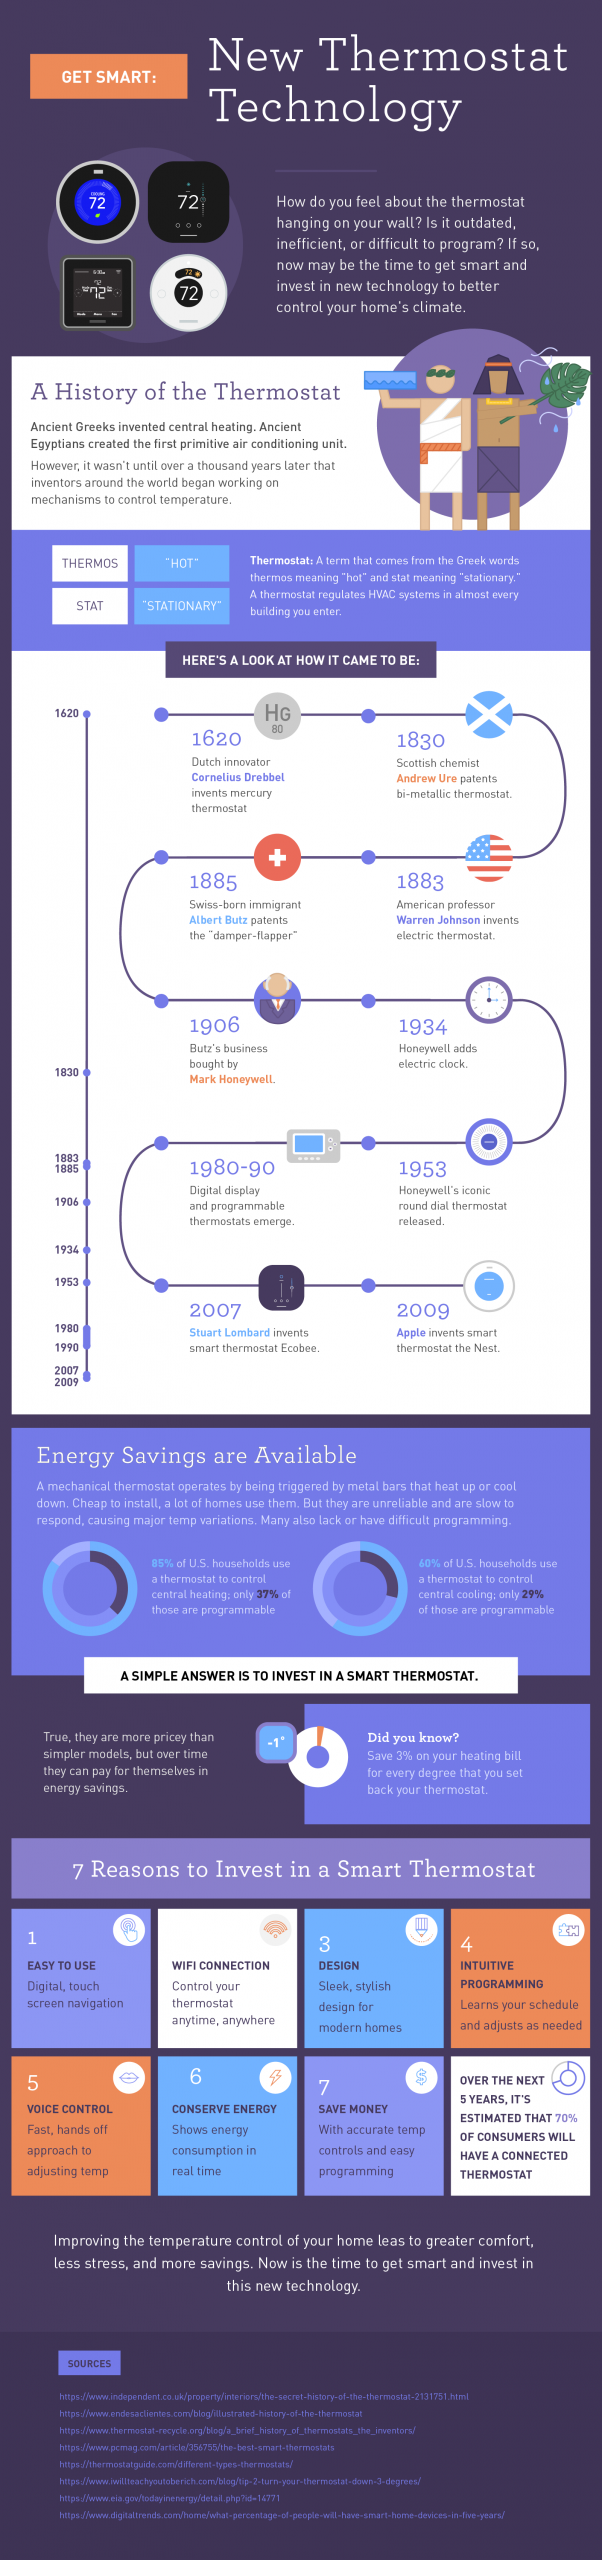 infographic-on new thermostat technology